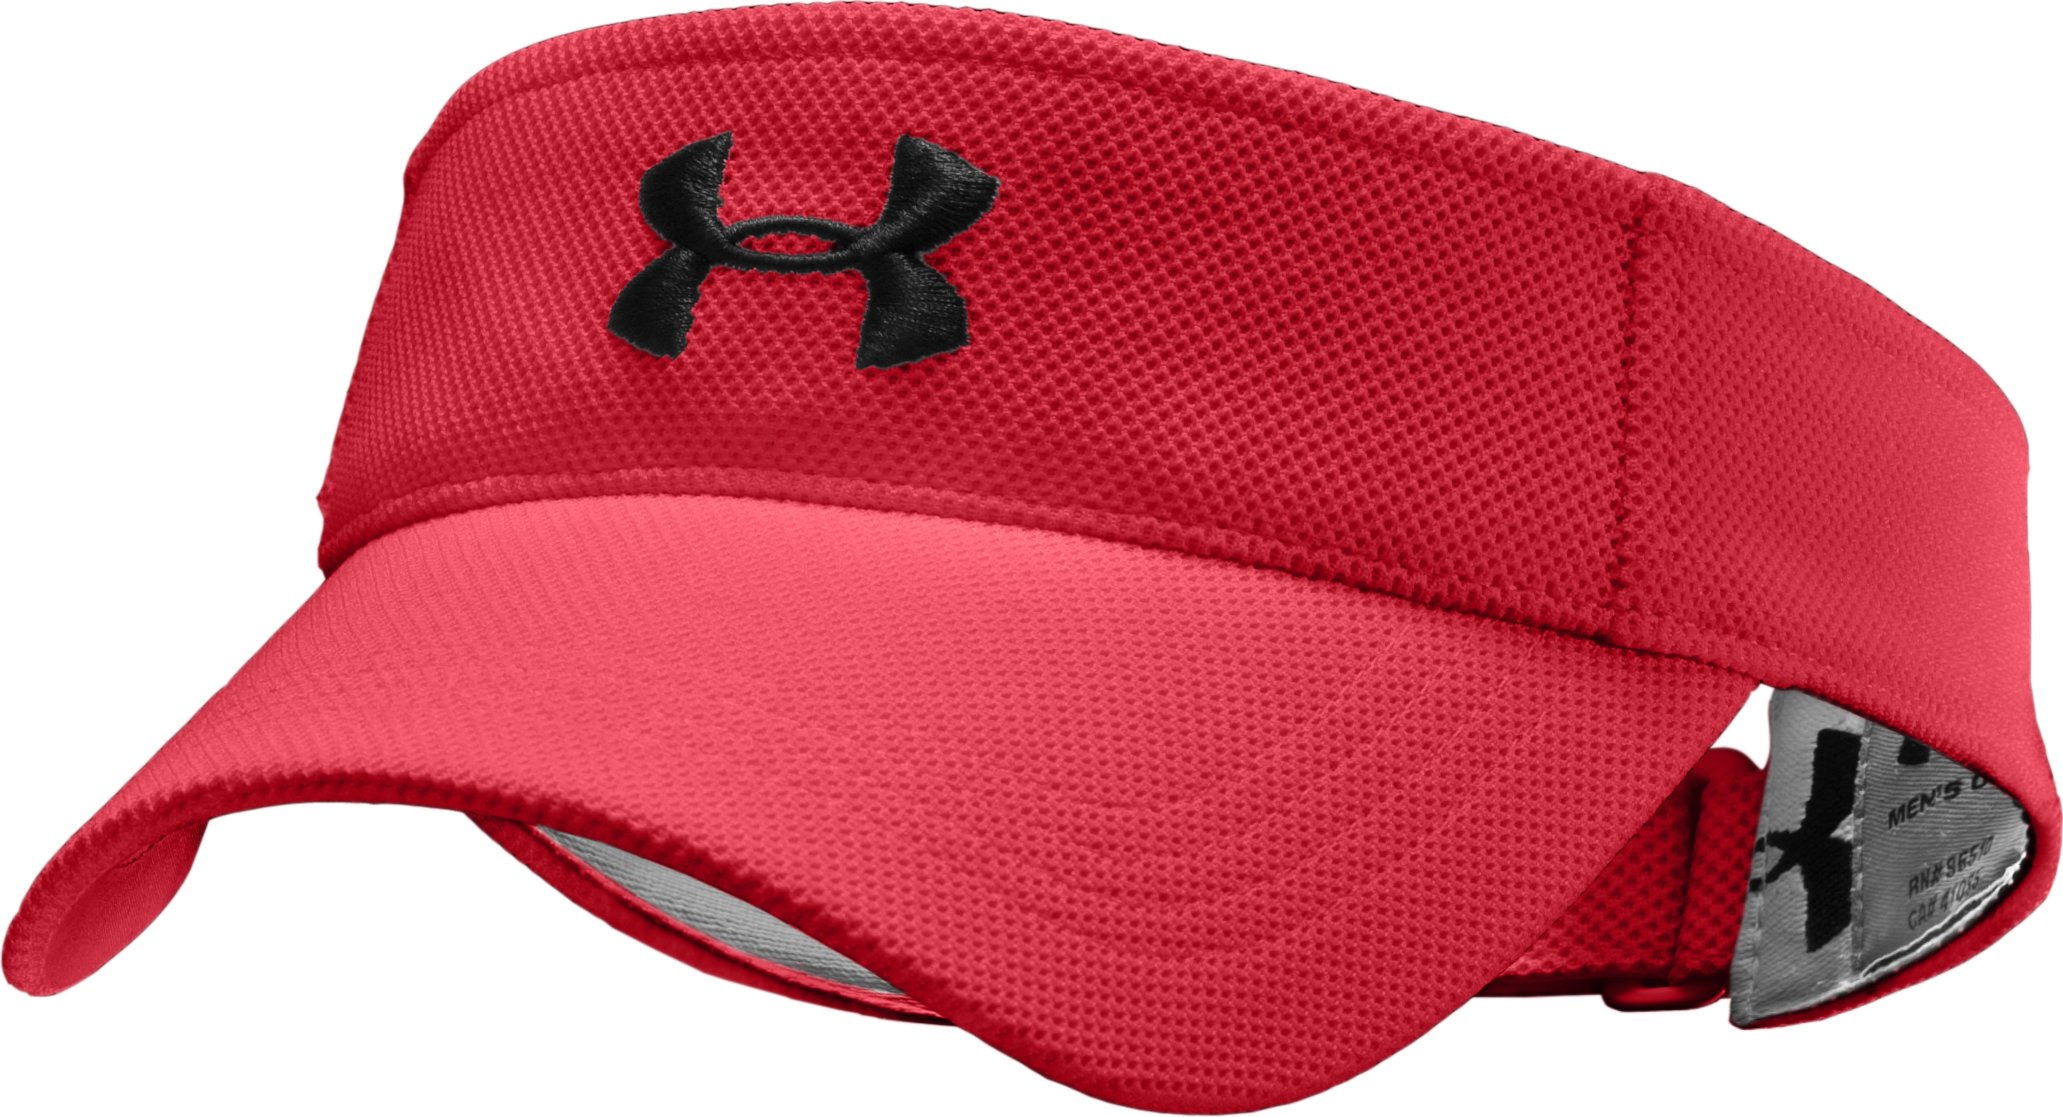 Boys' Audible Adjustable Visor, Red, zoomed image